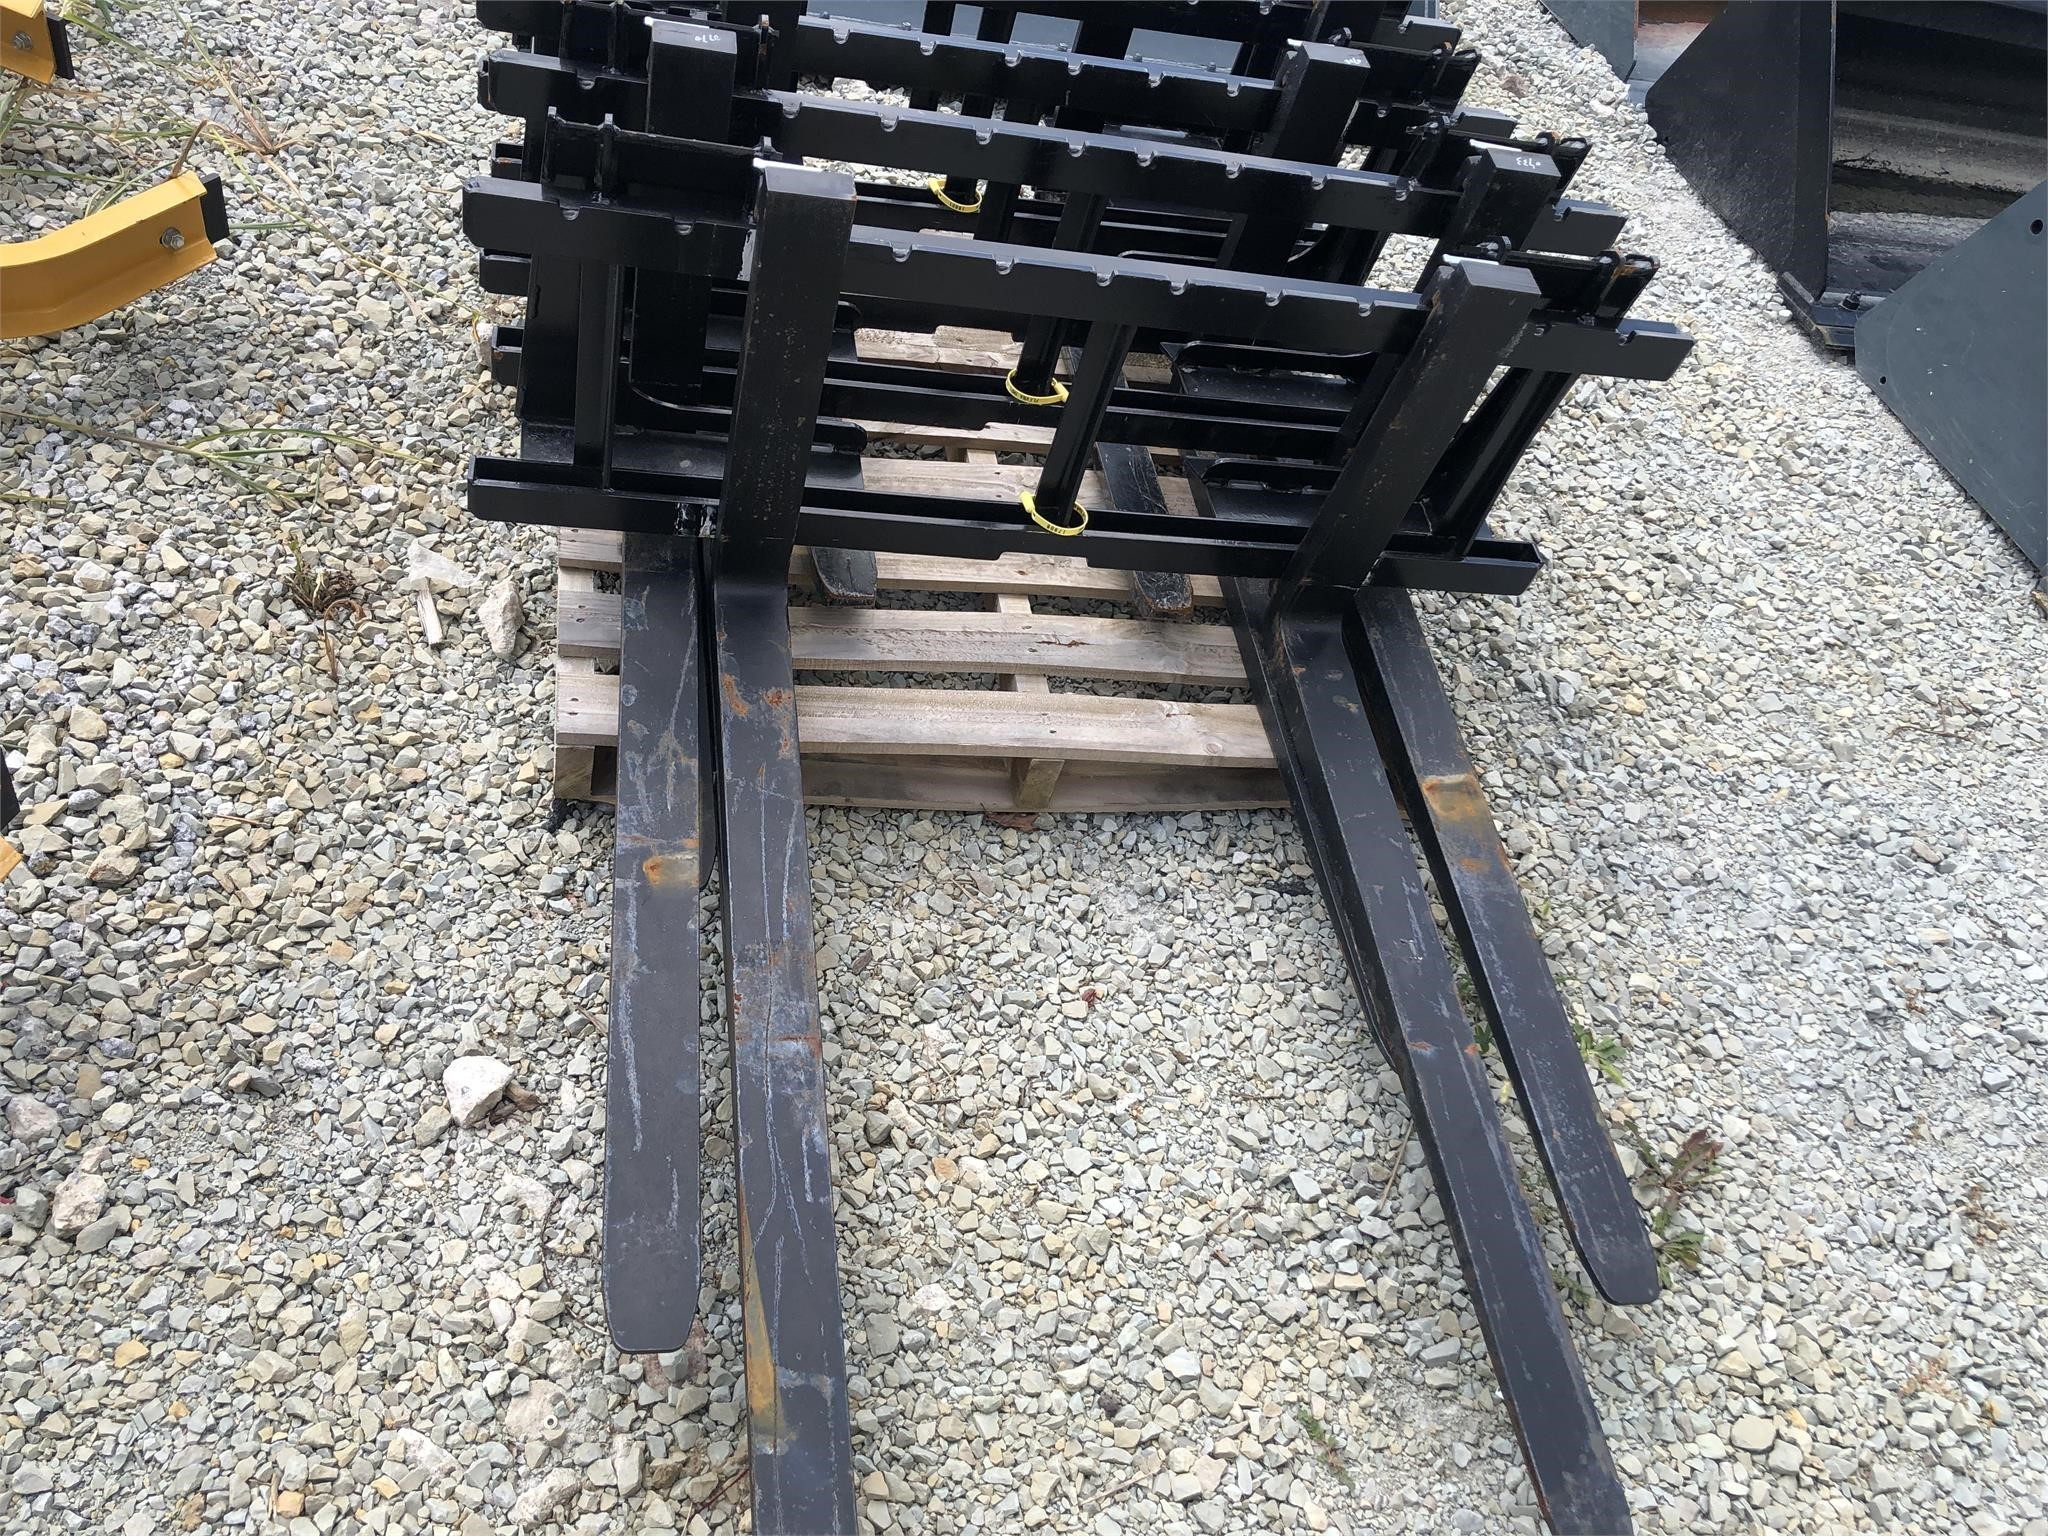 HLA HD09BO500 Loader and Skid Steer Attachment